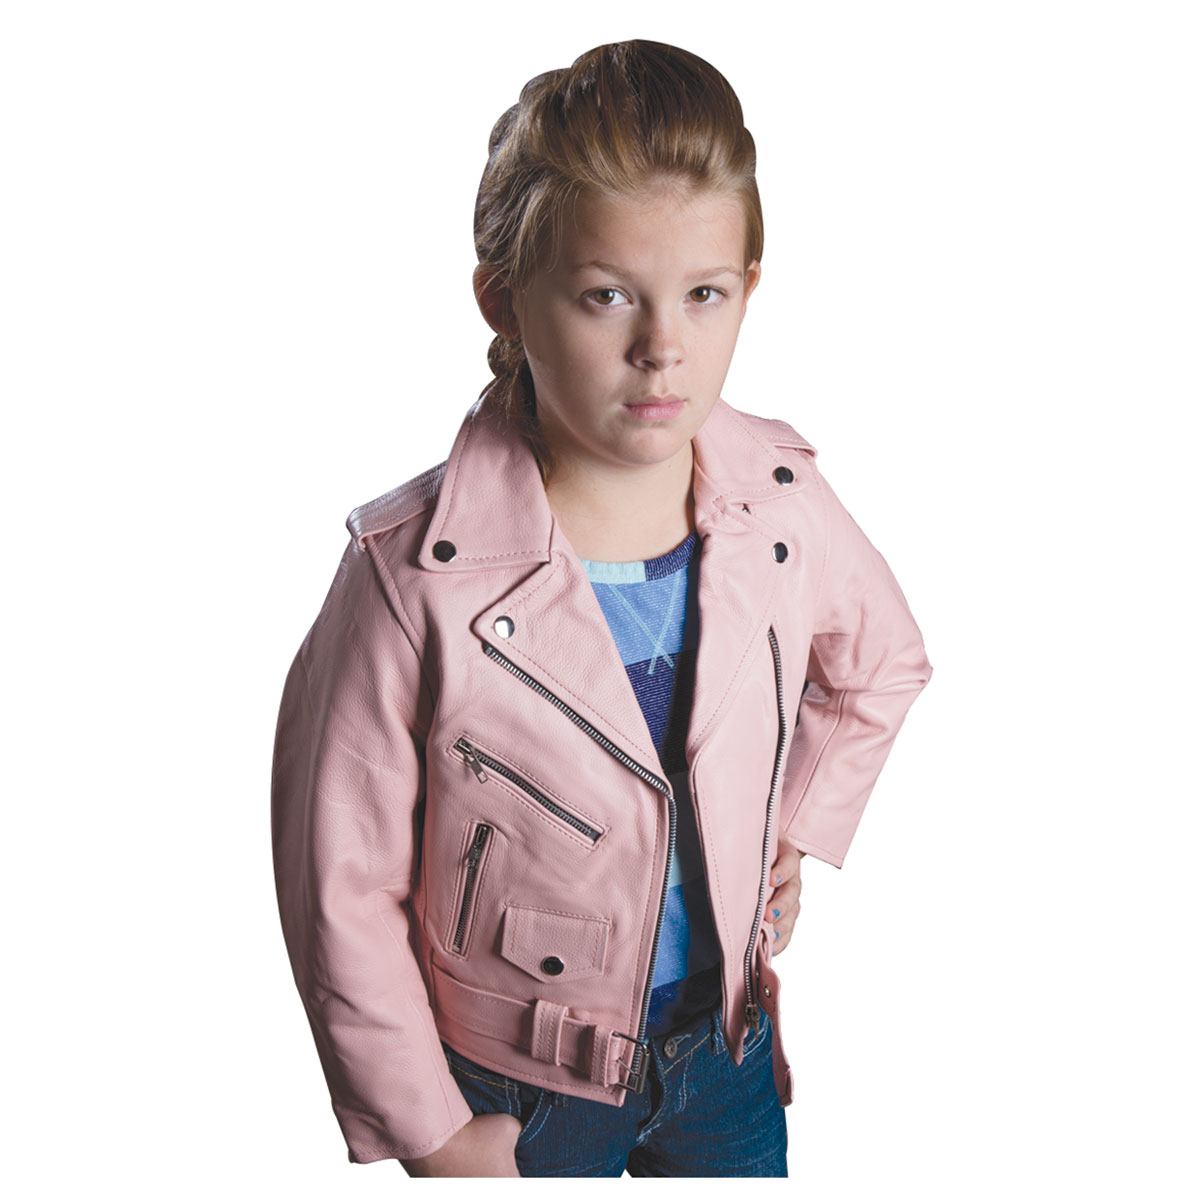 09028b4758e0 Allstate Leather Inc. Girl s Pink Cowhide Leather Motorcycle Jacket ...